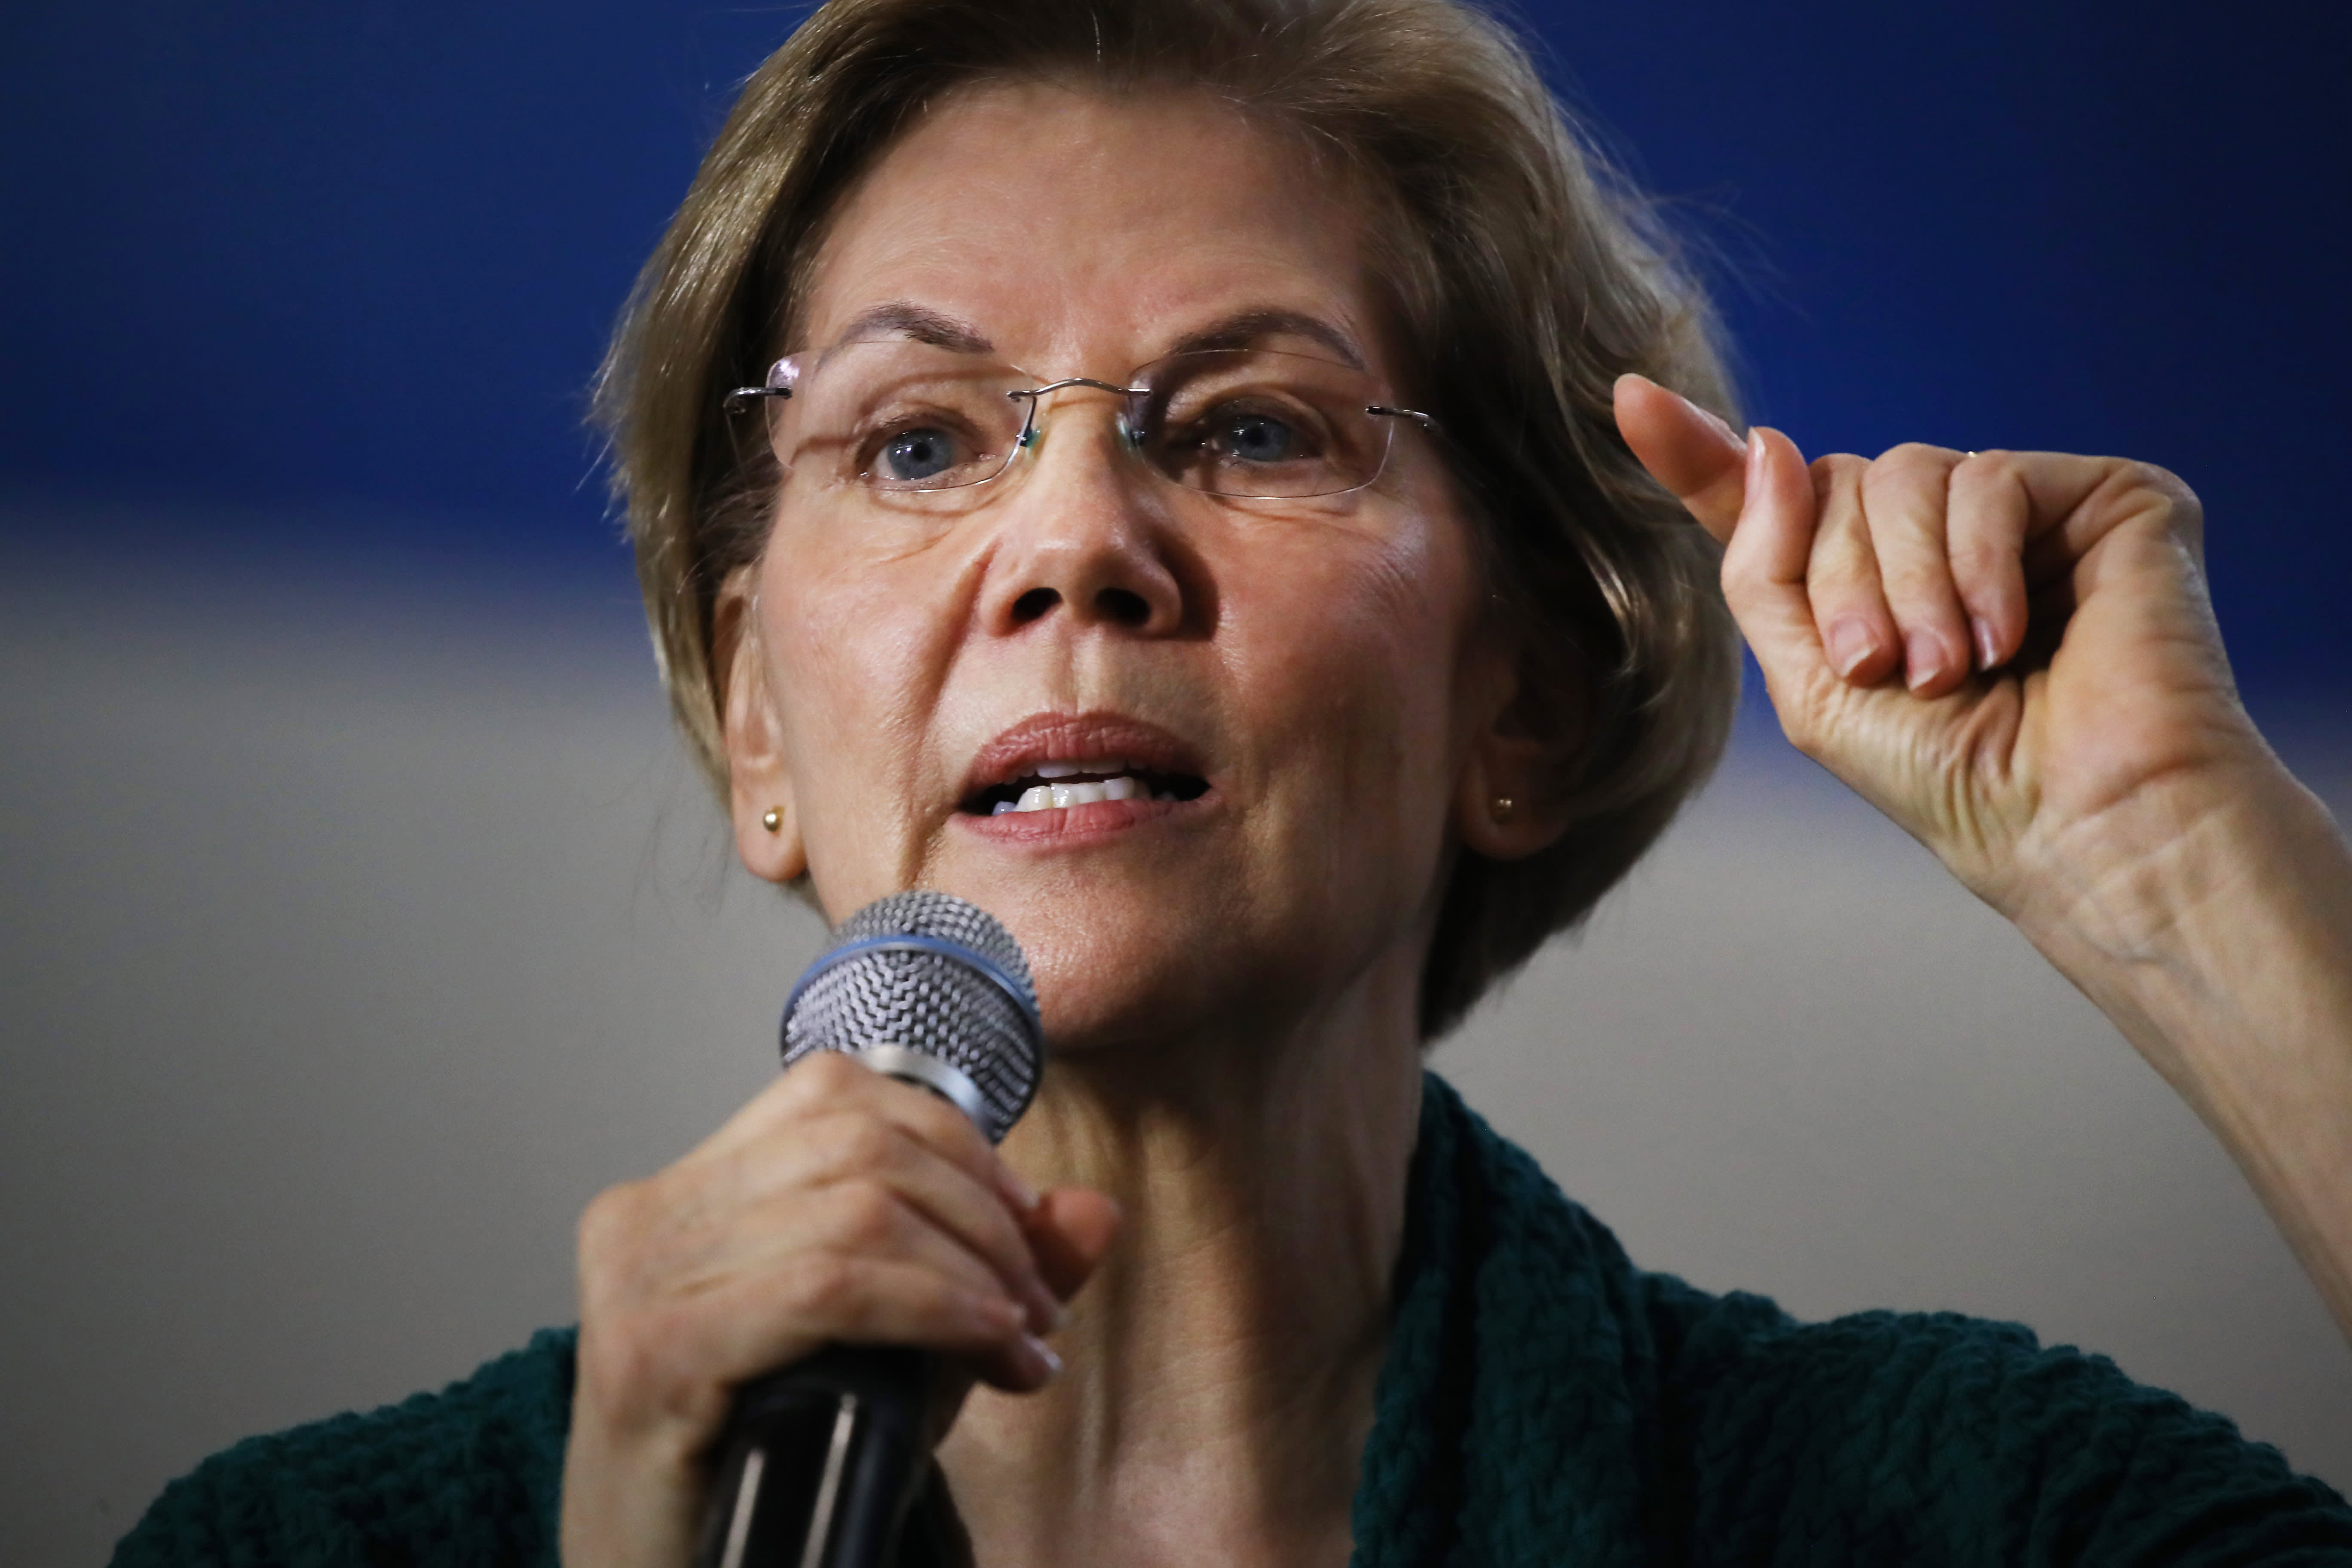 Elizabeth Warren wants to create a Justice Department task force to investigate Trump administration corruption